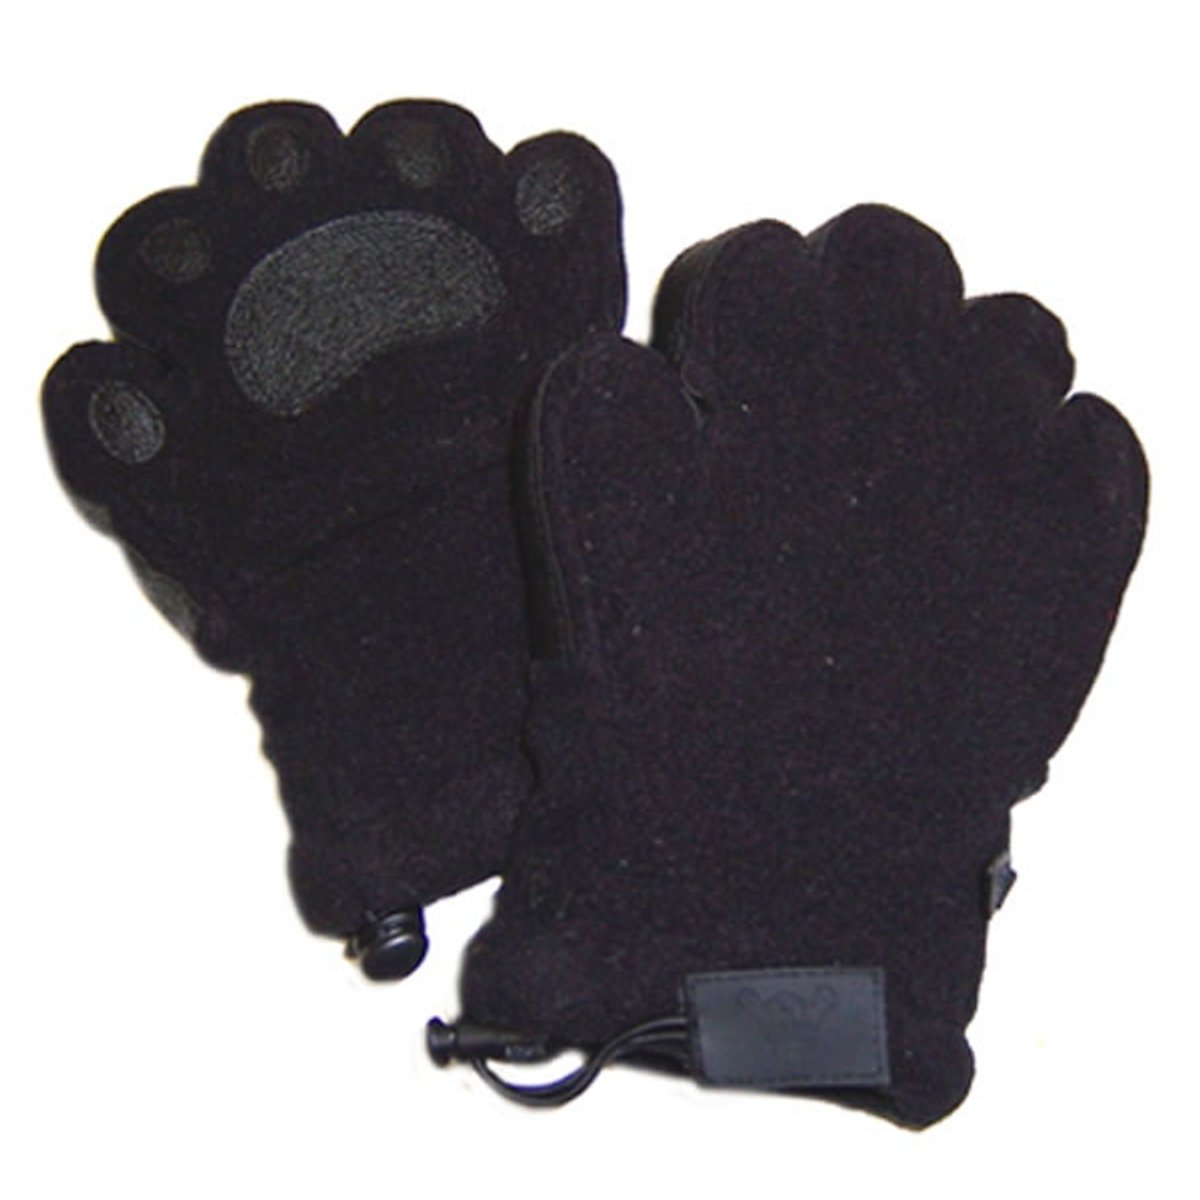 Bearhand Men's Mittens 17950{2}247